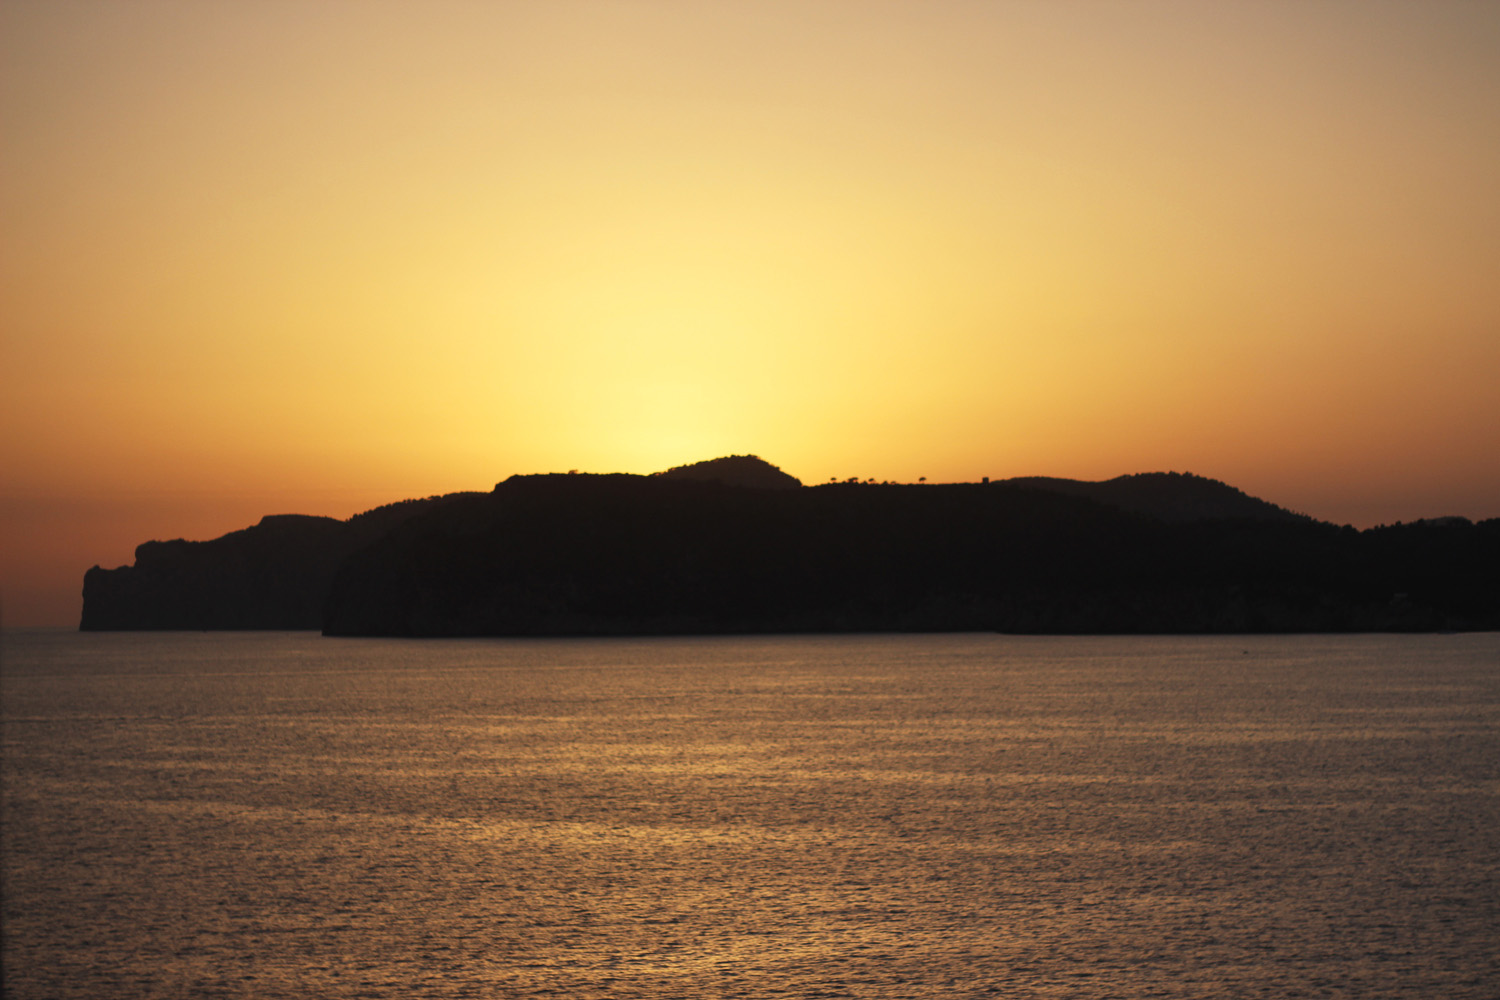 fatimayarie-mallorca-sunset-island-beach-sunrise-orange-santaponsa-img_1460